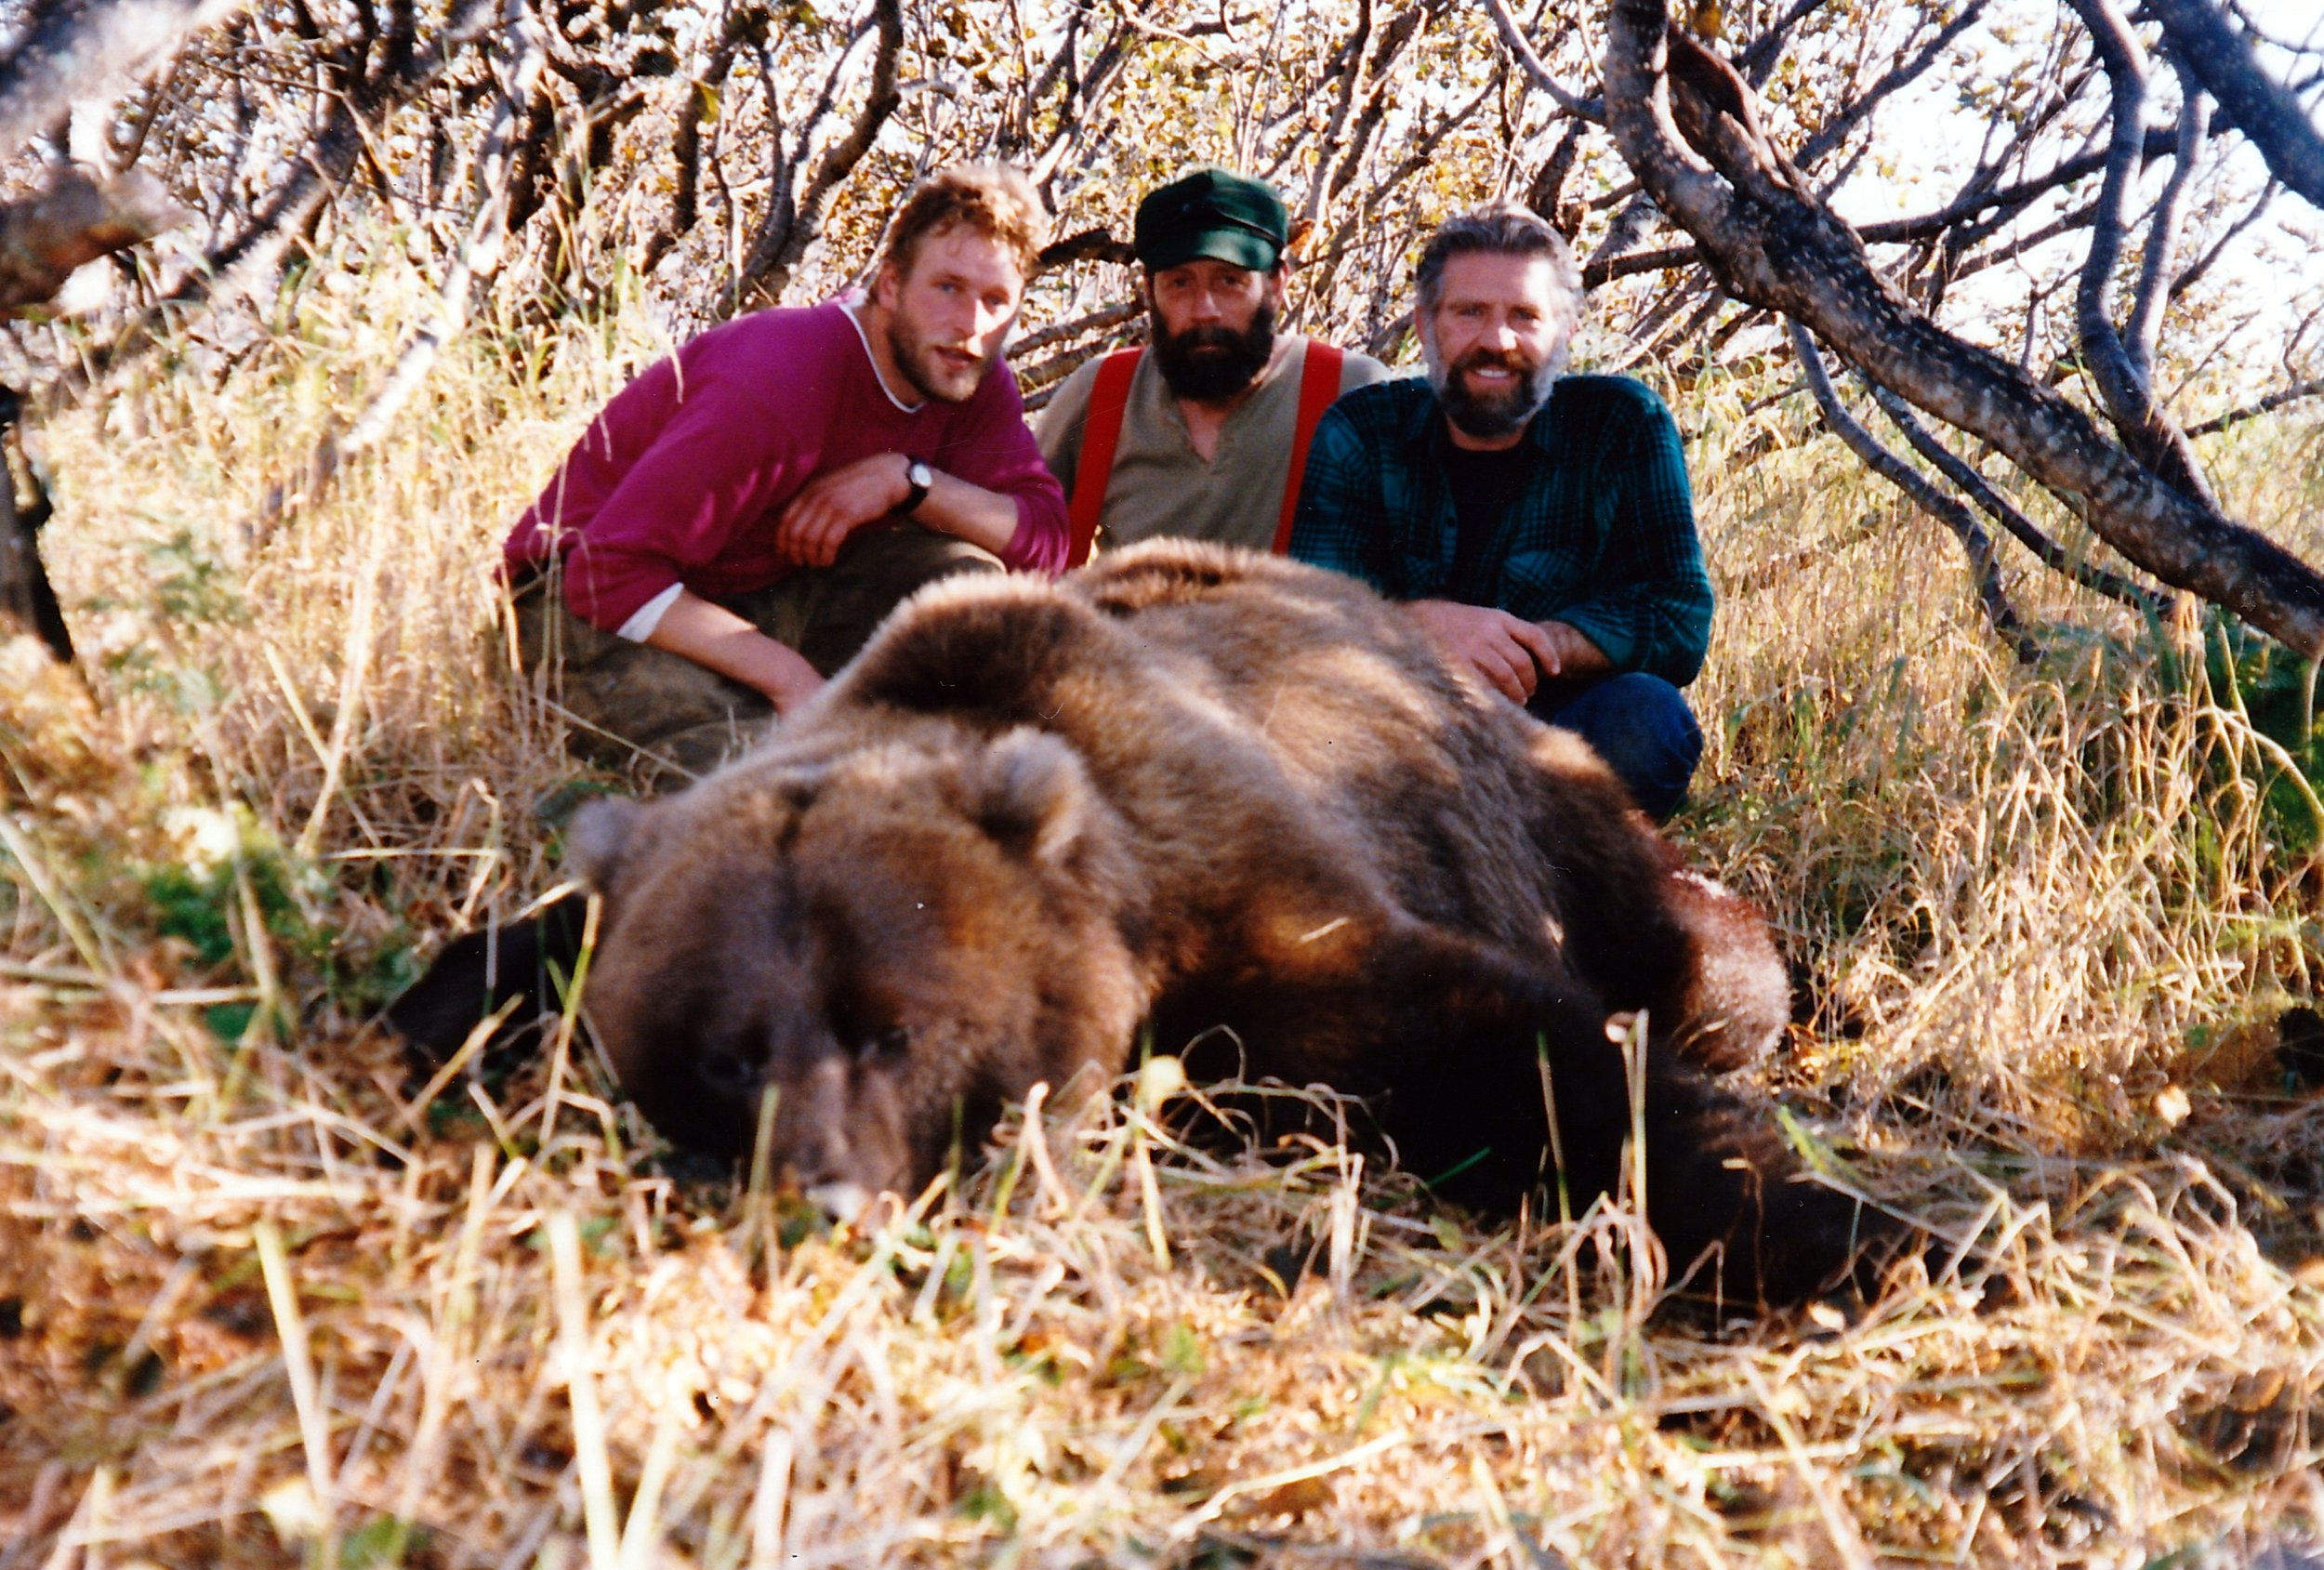 (L to R) Guides Mark Confer, Steve Lanphier and myself. Mark and I helped Steve recover his client's trophy bear. It had been too dark for Steve to venture into the alder alone.